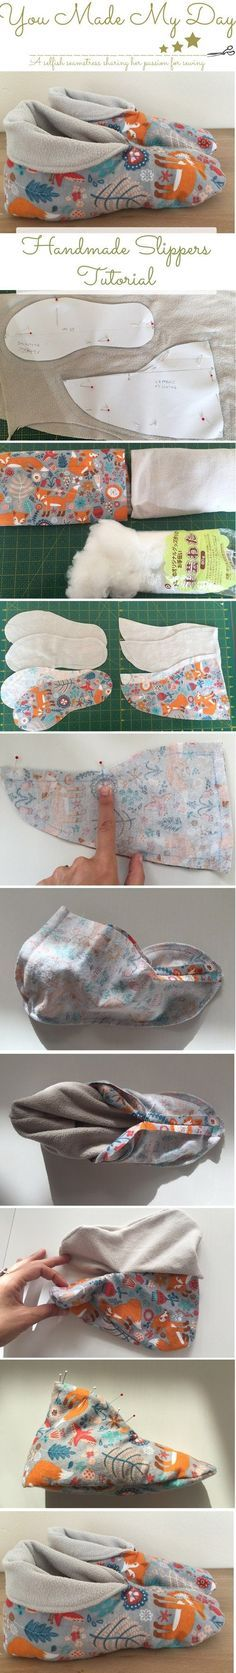 Handmade slippers tutorial and pattern. For more sewing patterns and tutorials, visit http://you-made-my-day.com/blog More